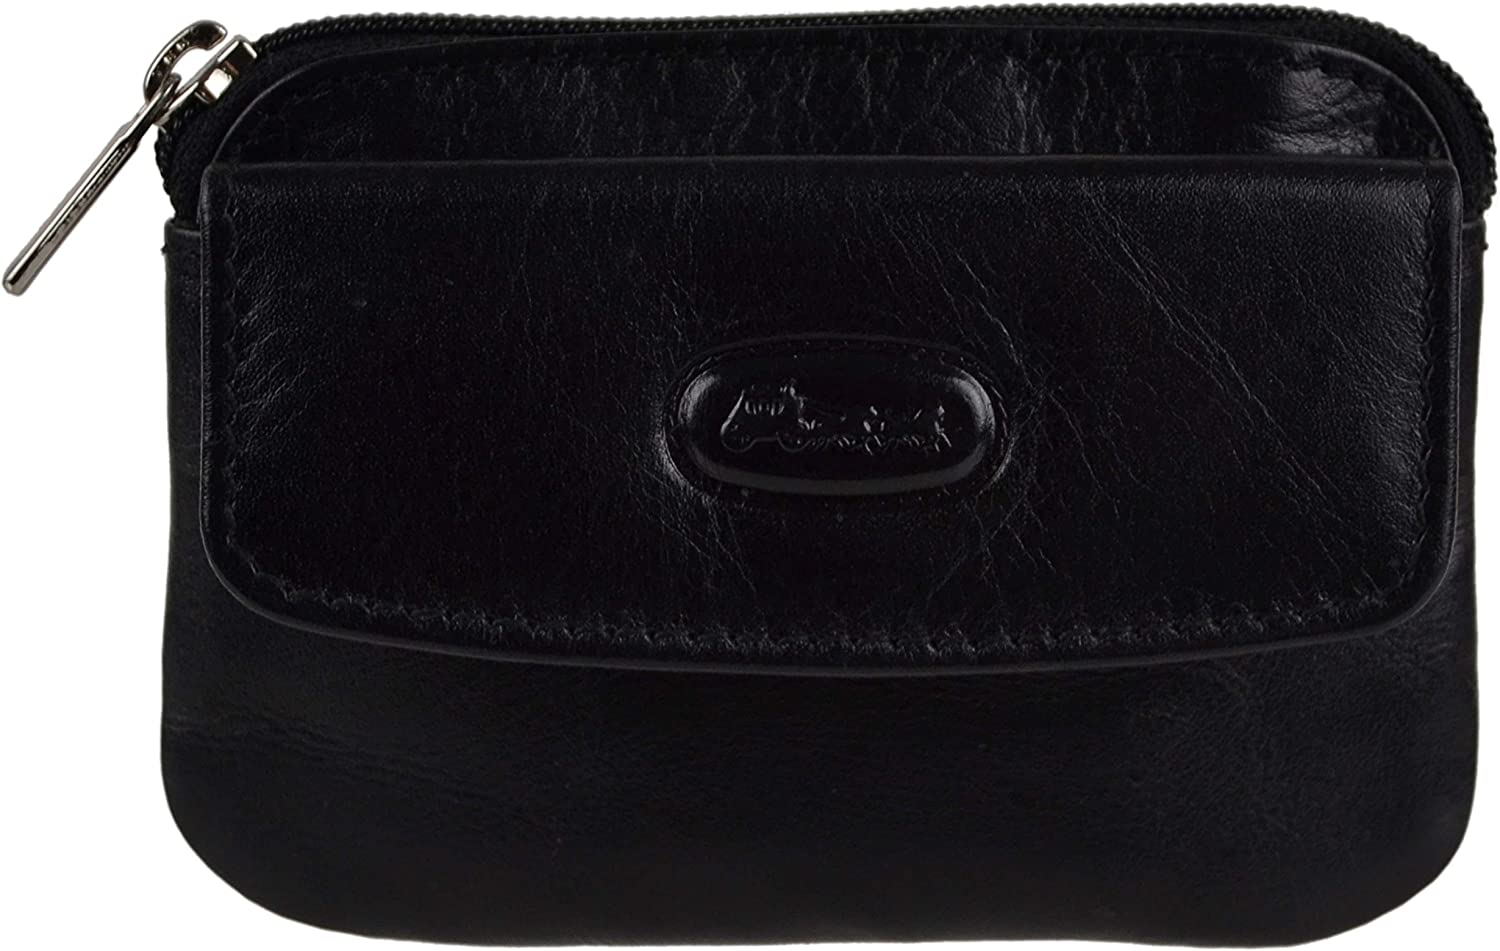 Hansson Men's Small Top Leather Coin Purse Pouch/Wallet By Key Ring